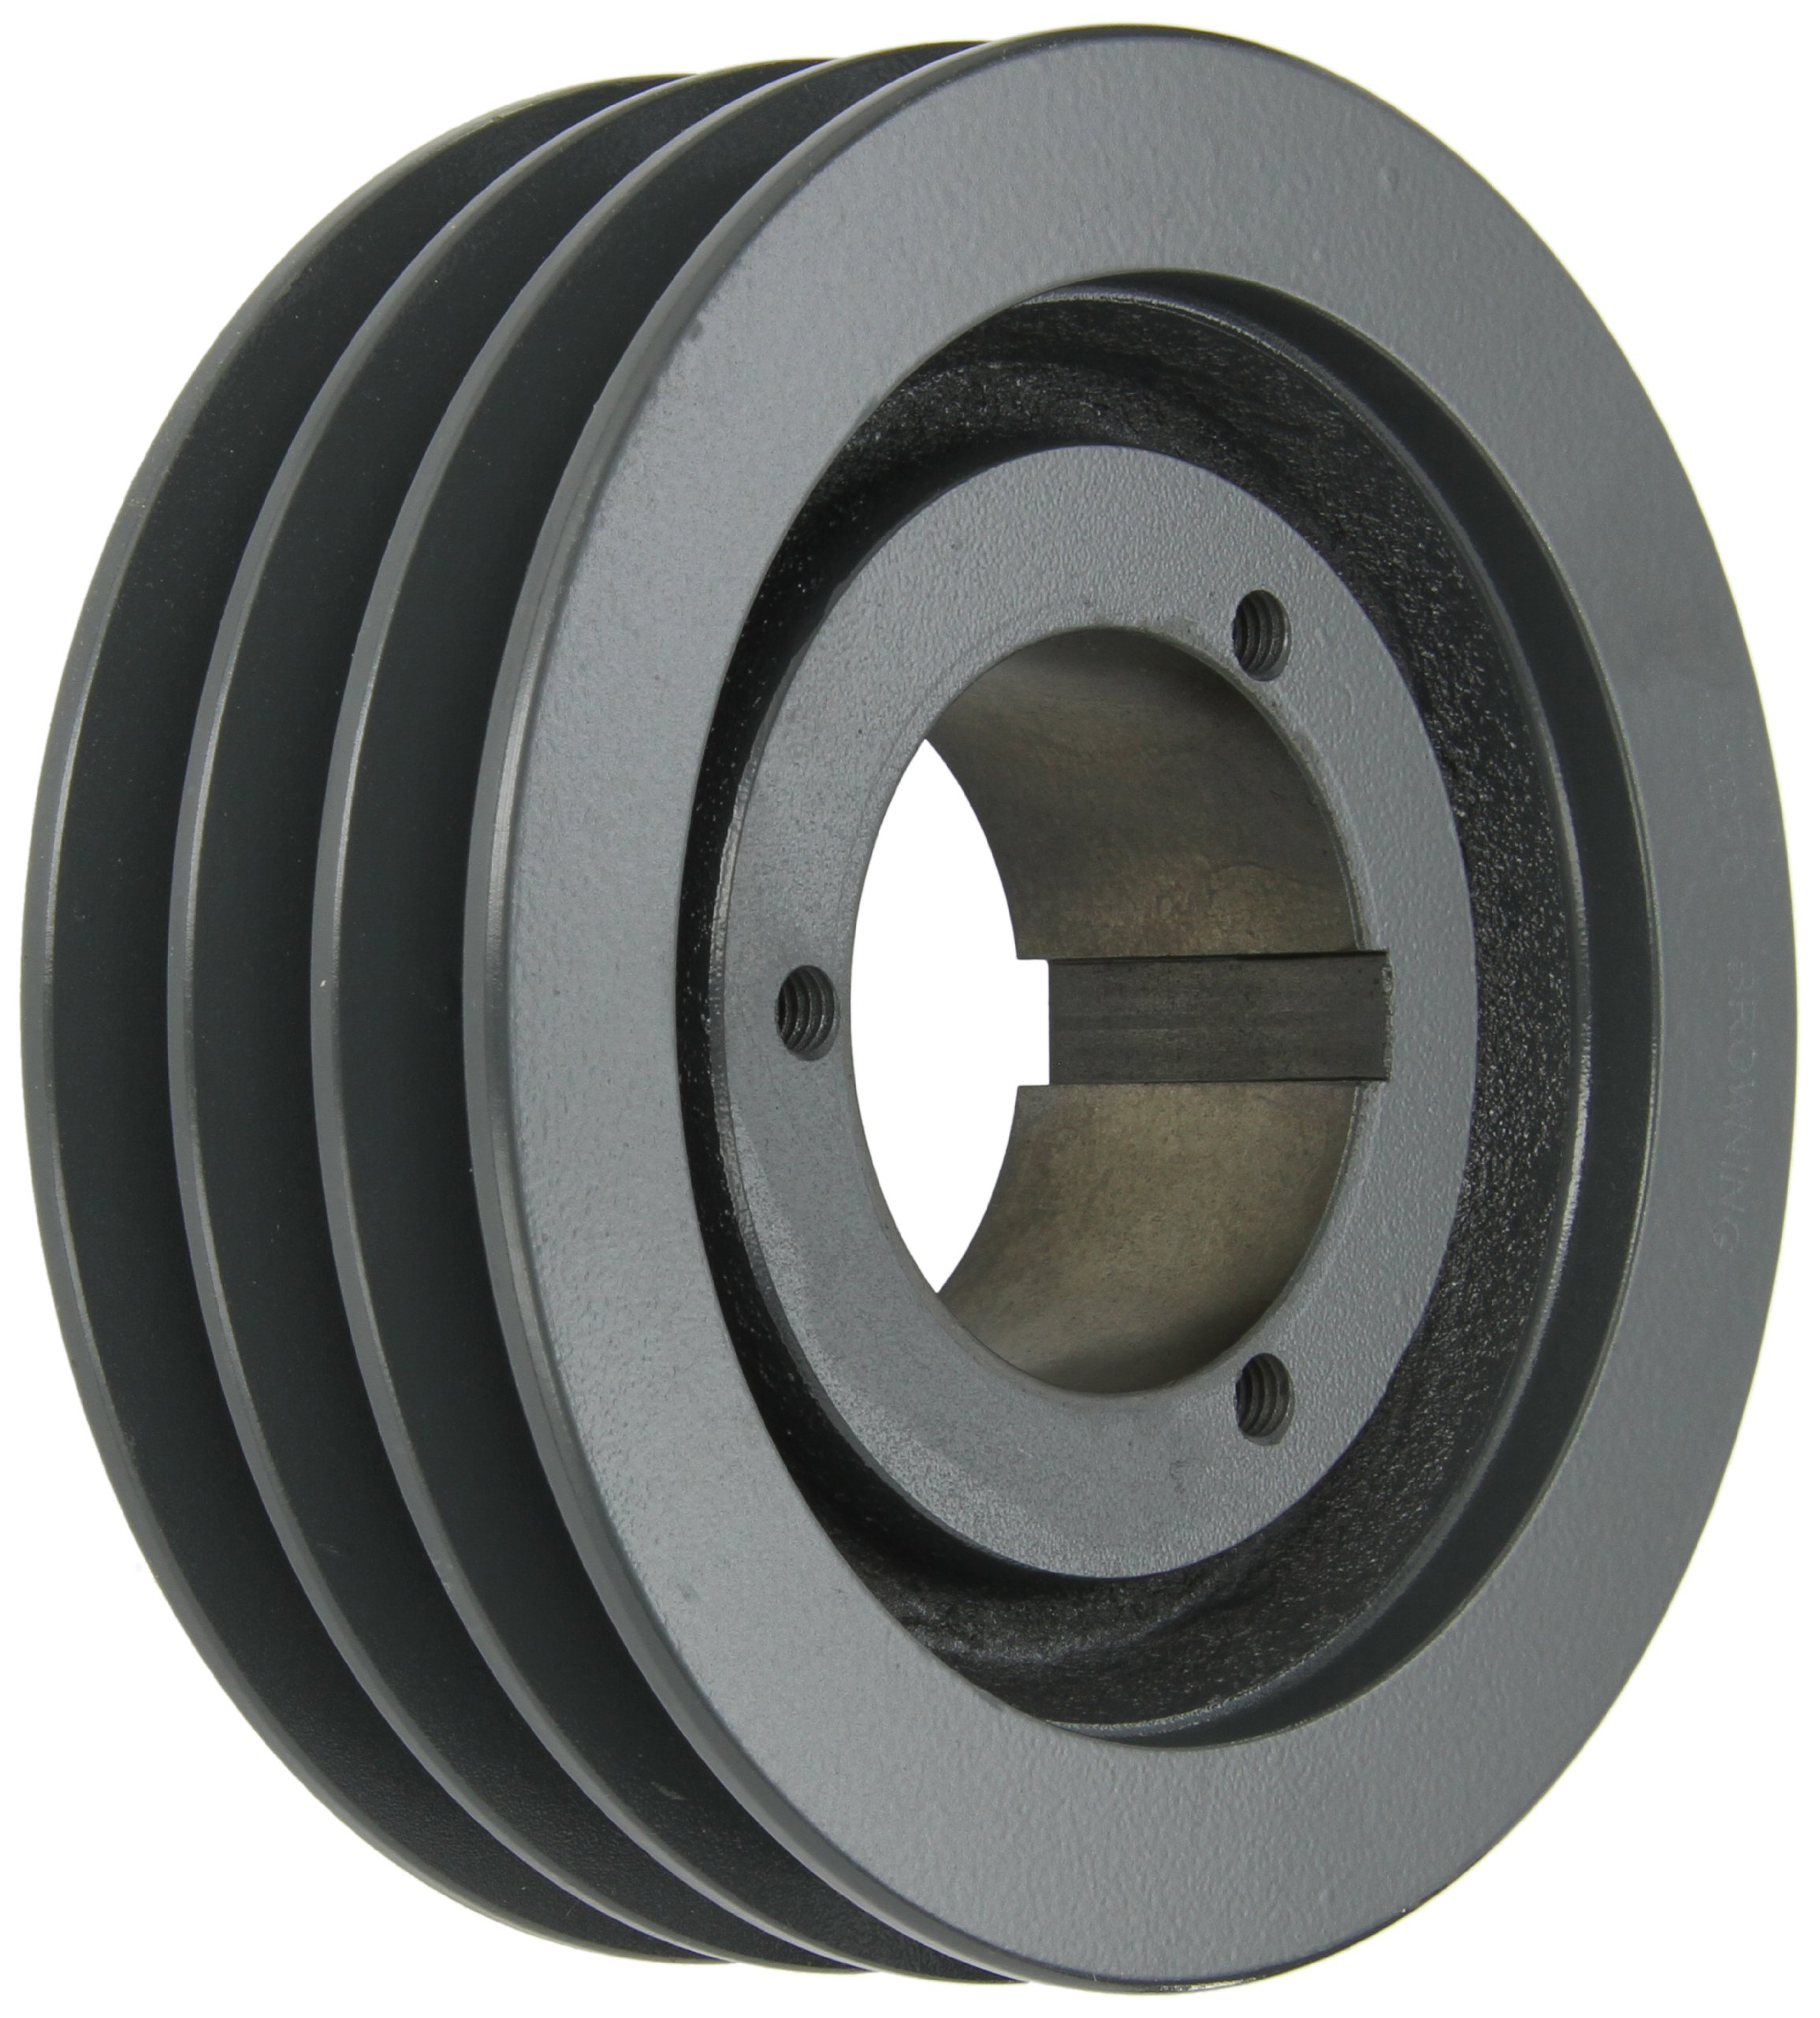 Browning 3TB70 Split Taper Sheave, Cast Iron, 3 Groove, A or B Belt, Uses Q1 Bushing